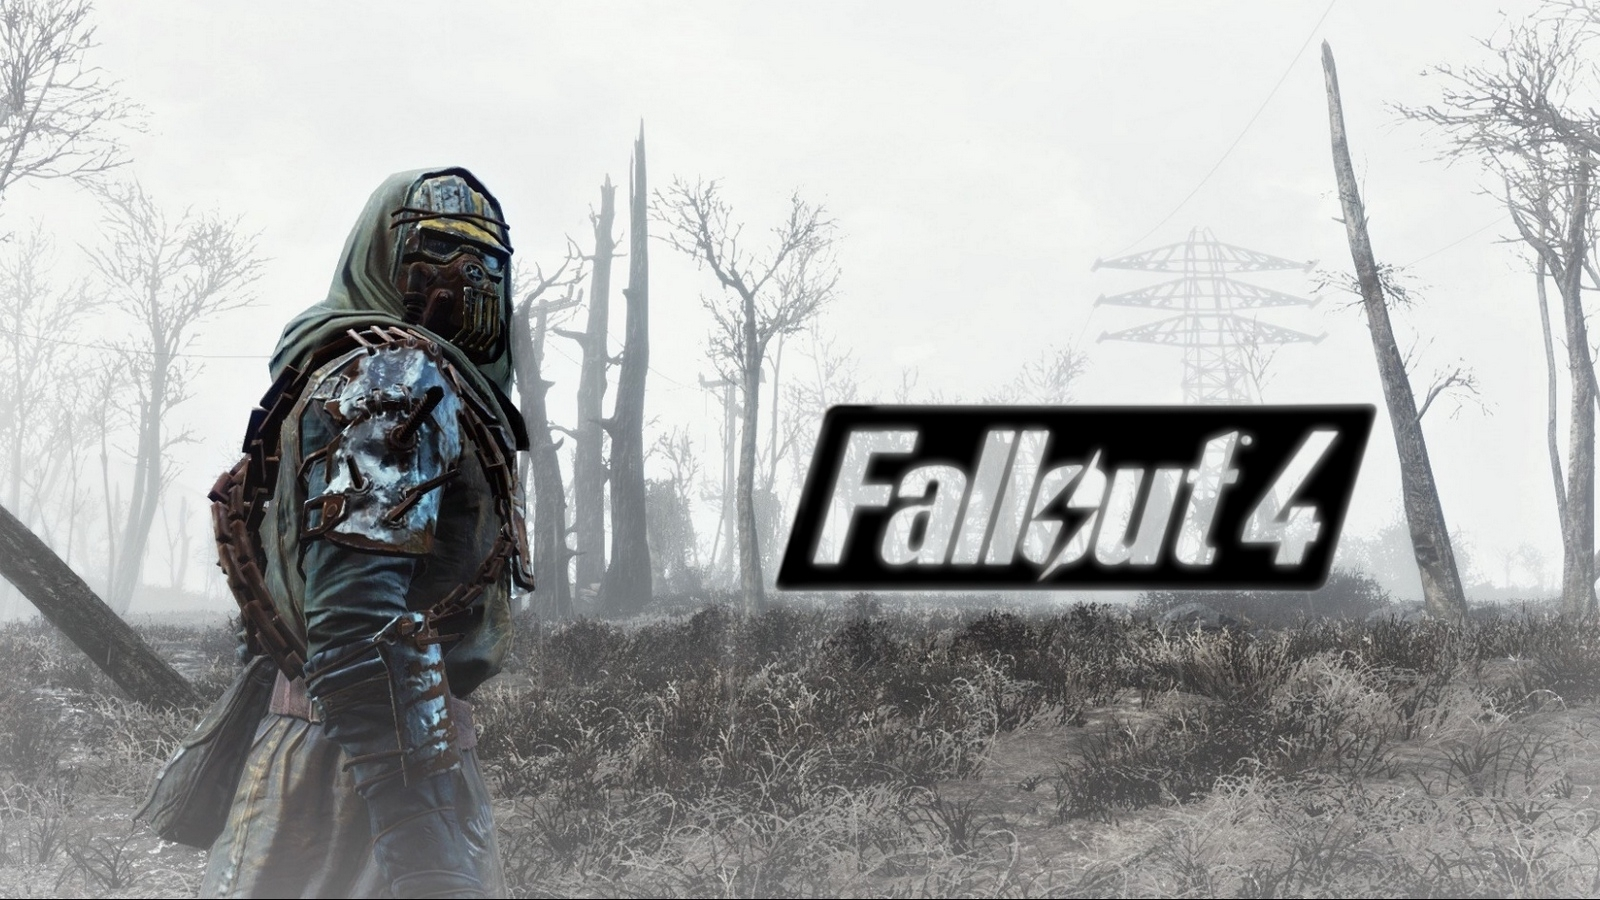 download wallpaper 1600x900 fallout 4, armor, soldier, field